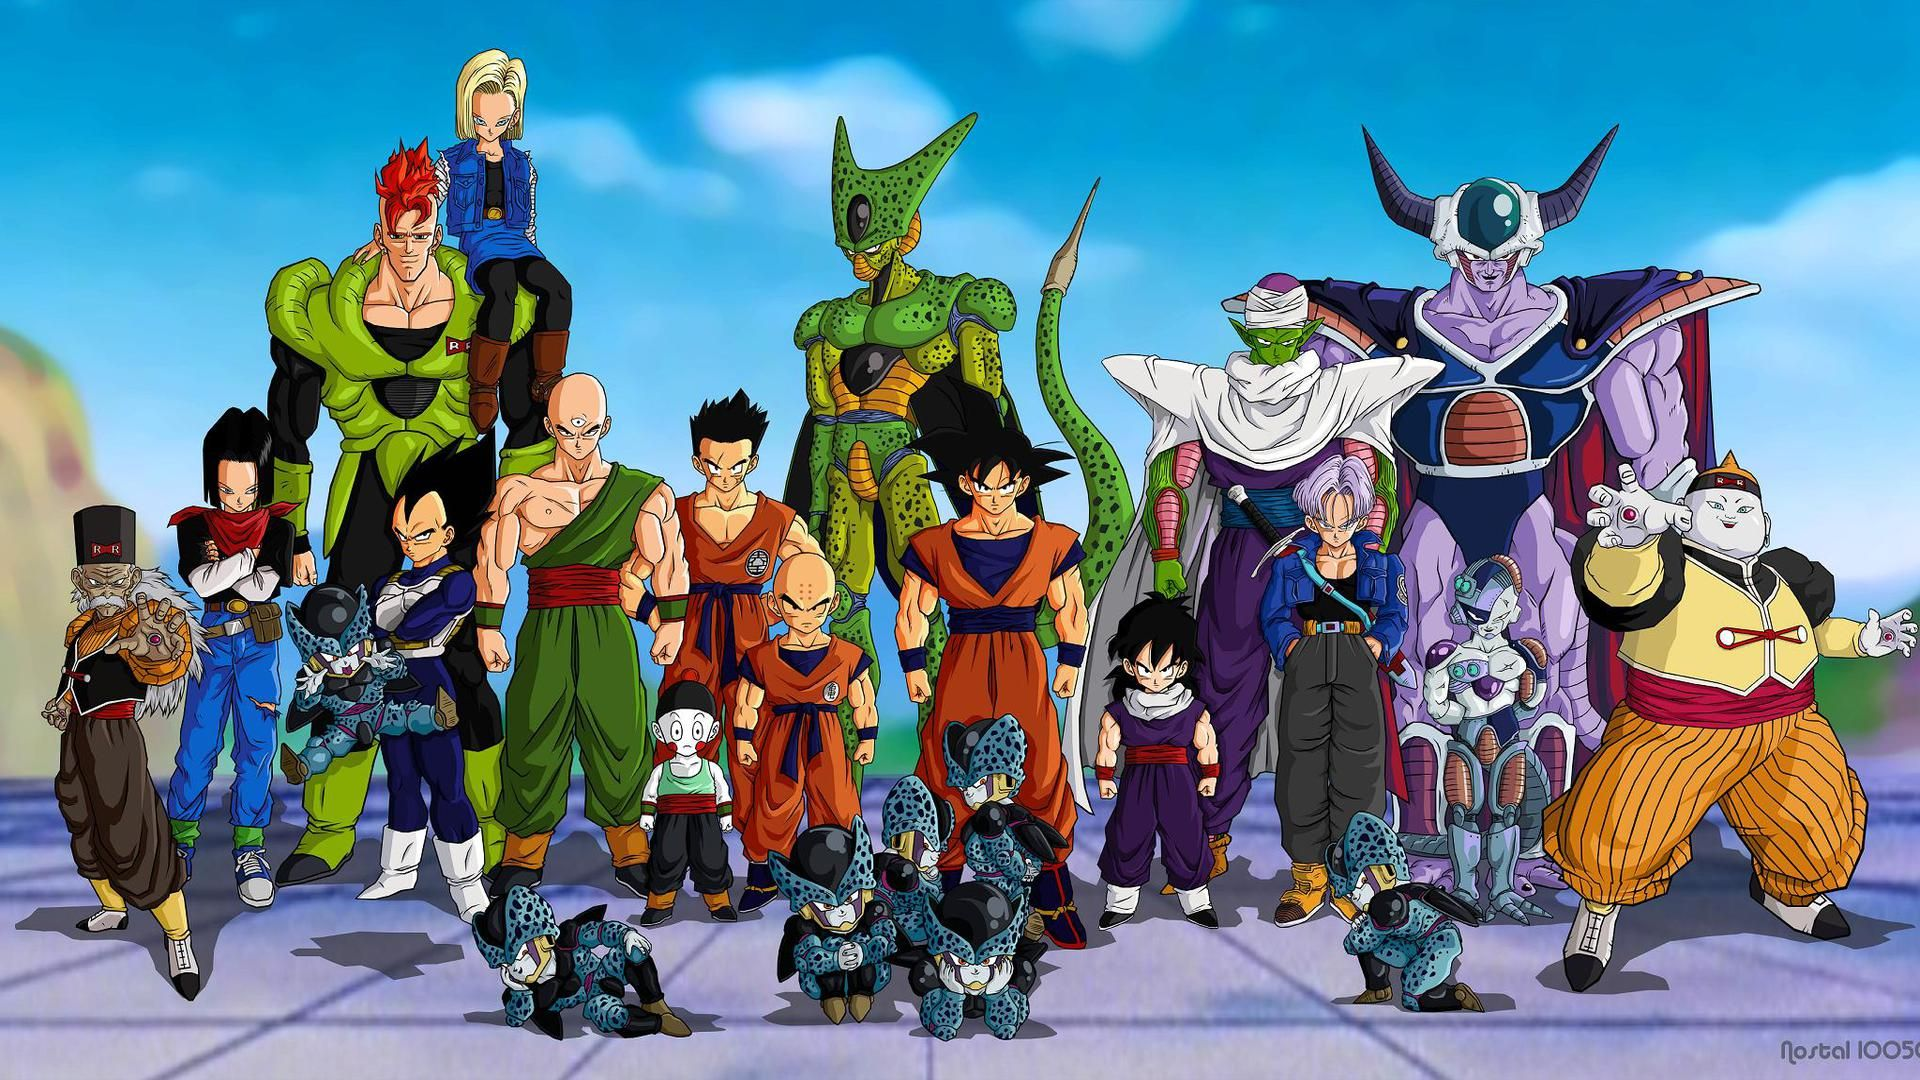 Dragon Ball Z All Characters Image Pictures Anime Hd Wallpapers Widescreen For Desktop Pc Dragon Ball Anime Dragon Ball Z Wallpaper